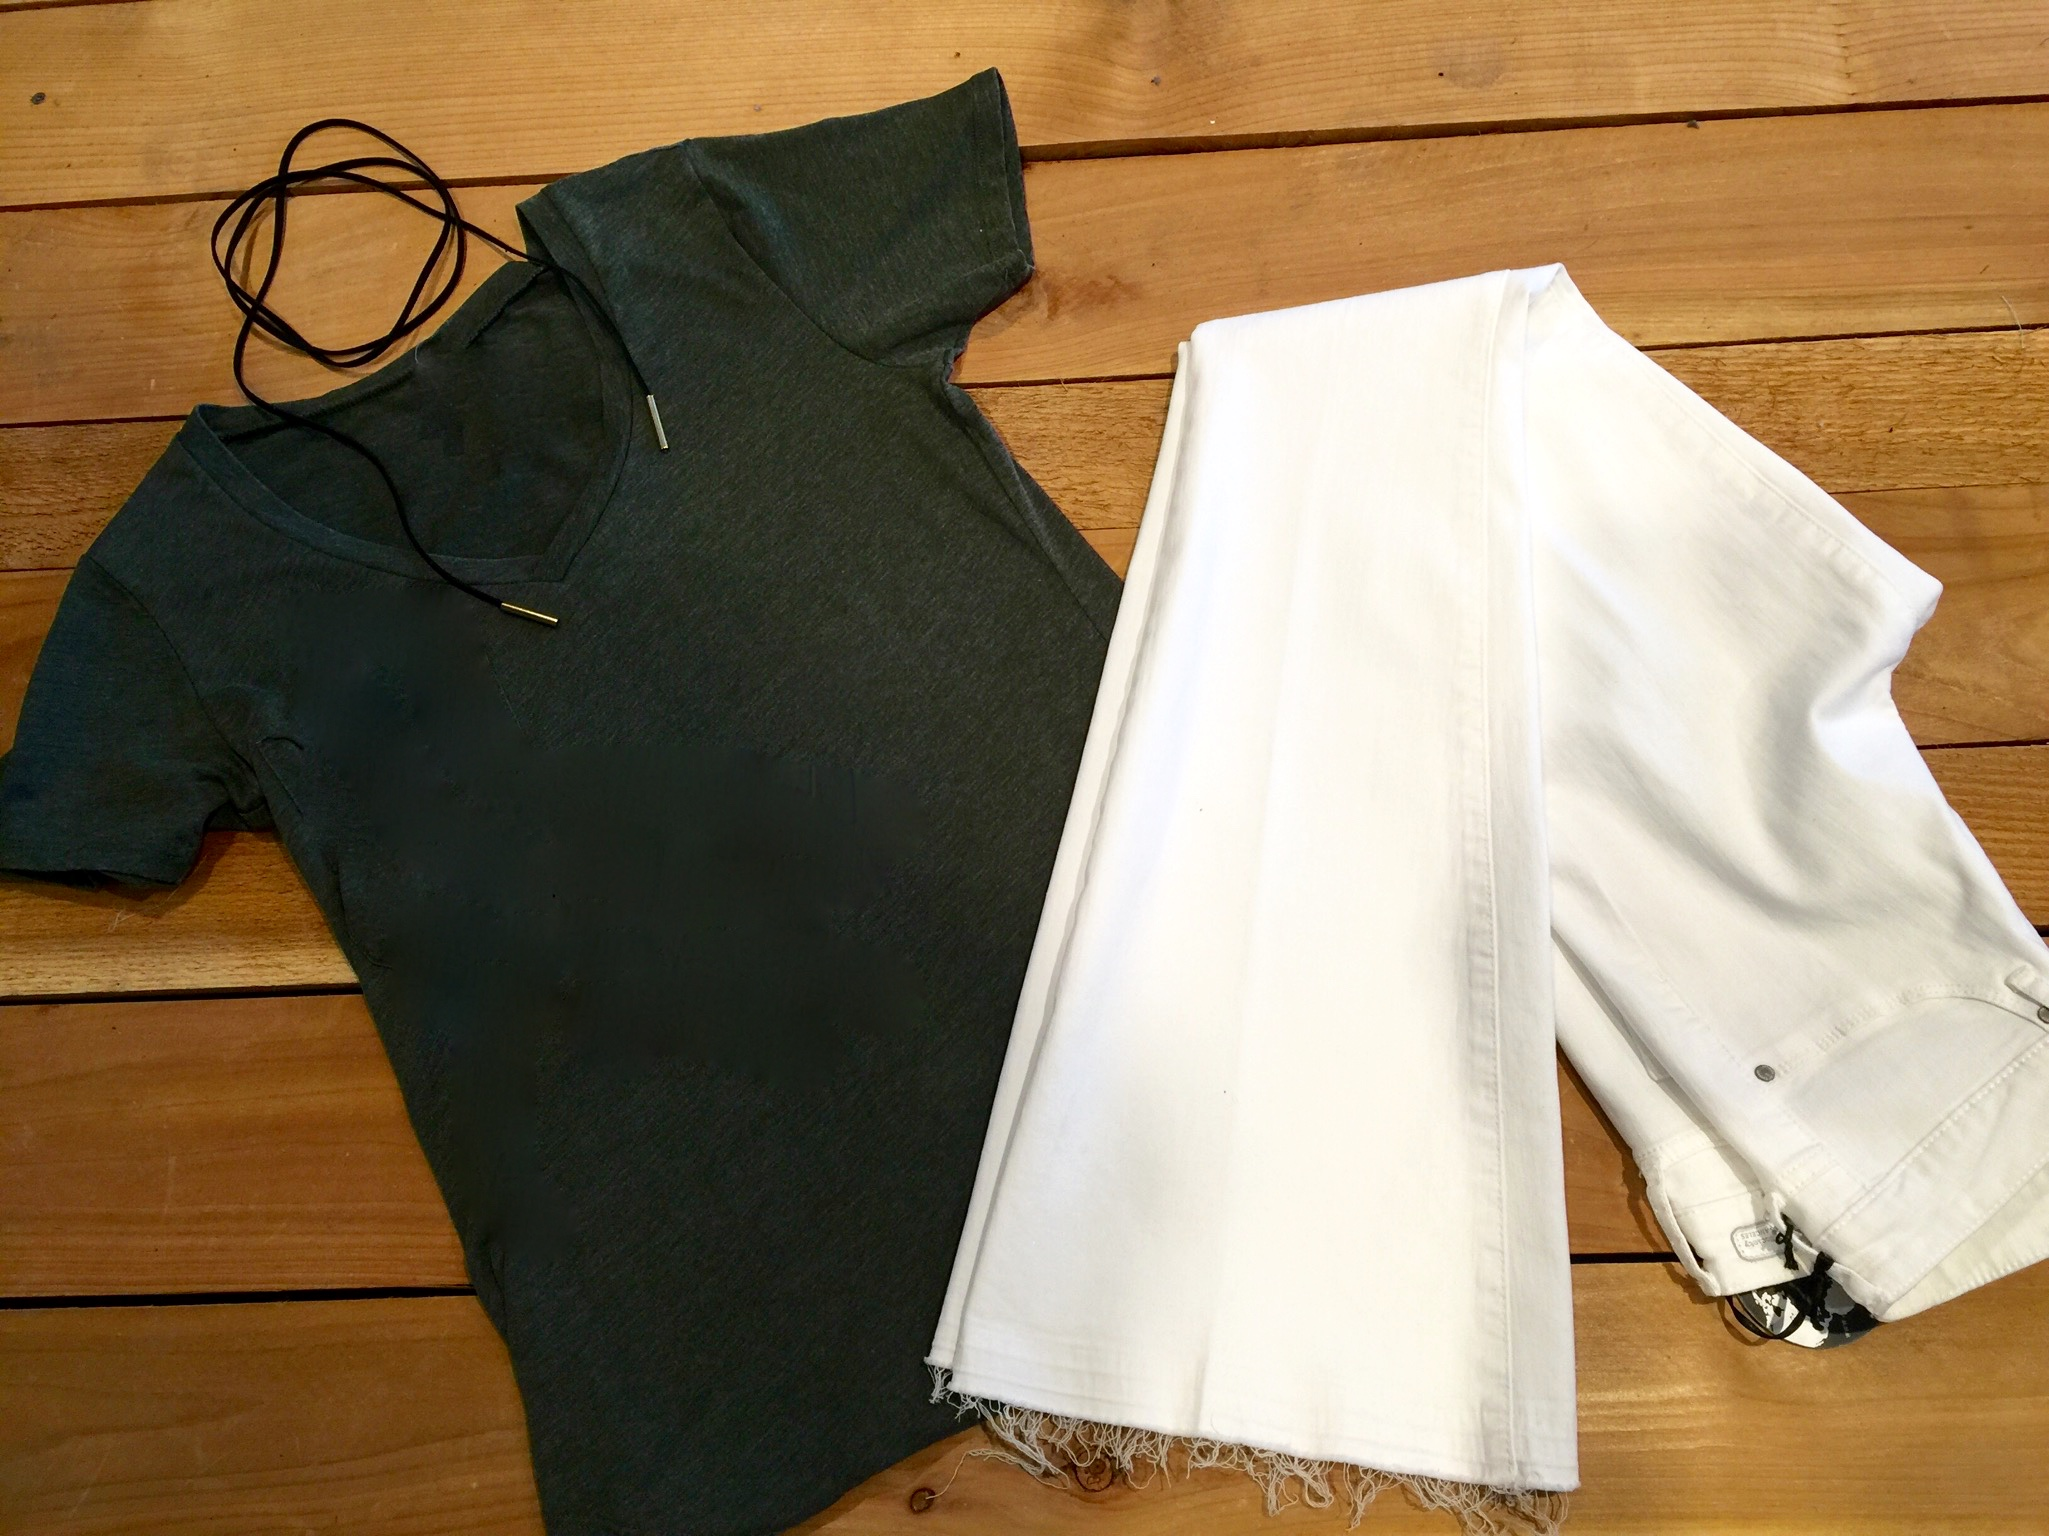 Sage Threads and Co.: Fun Option for Date Night or GNO